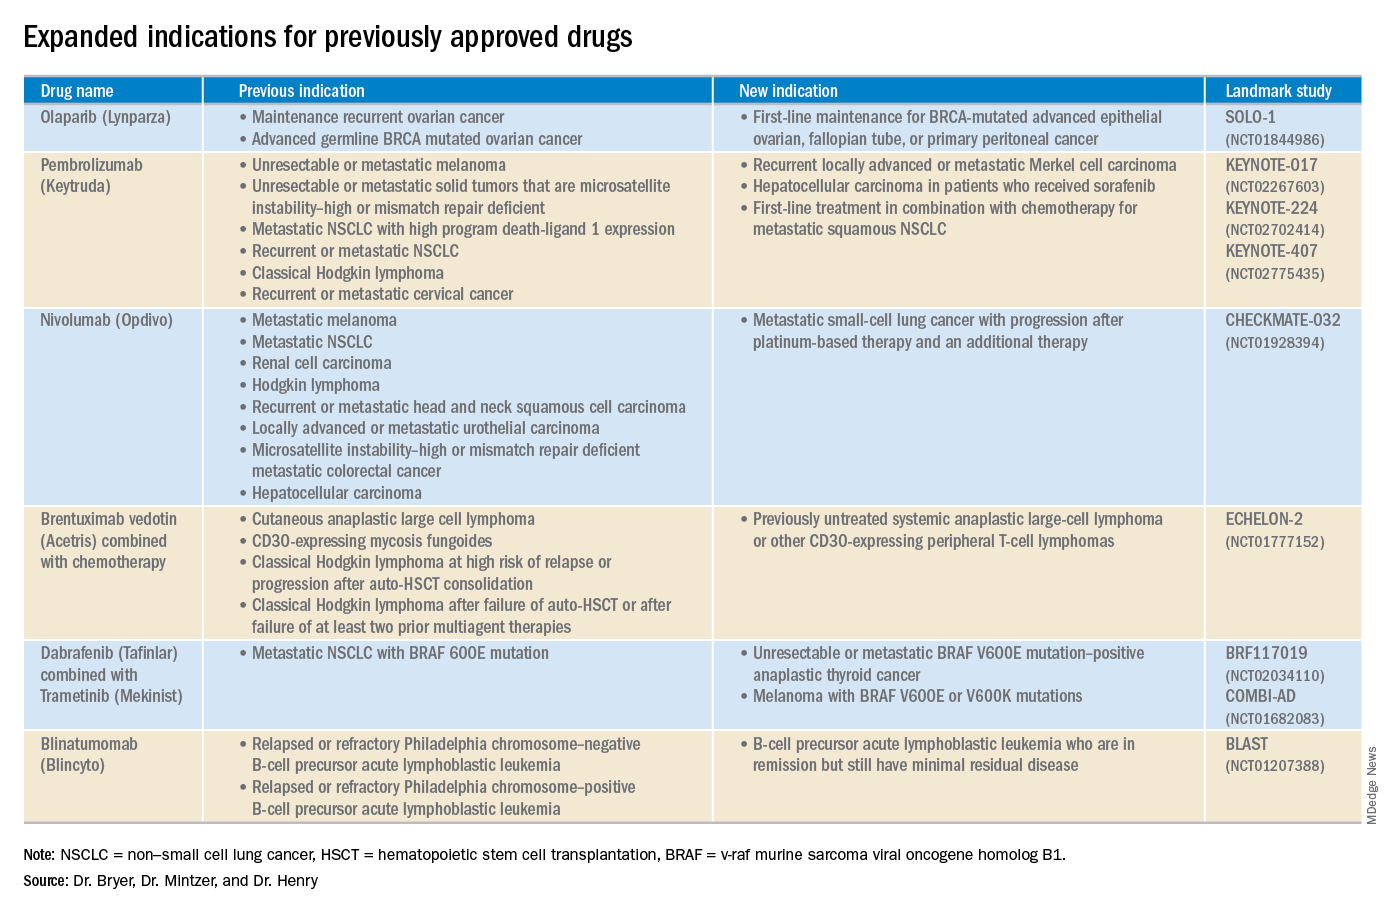 Expanded indications for previously approved drugs